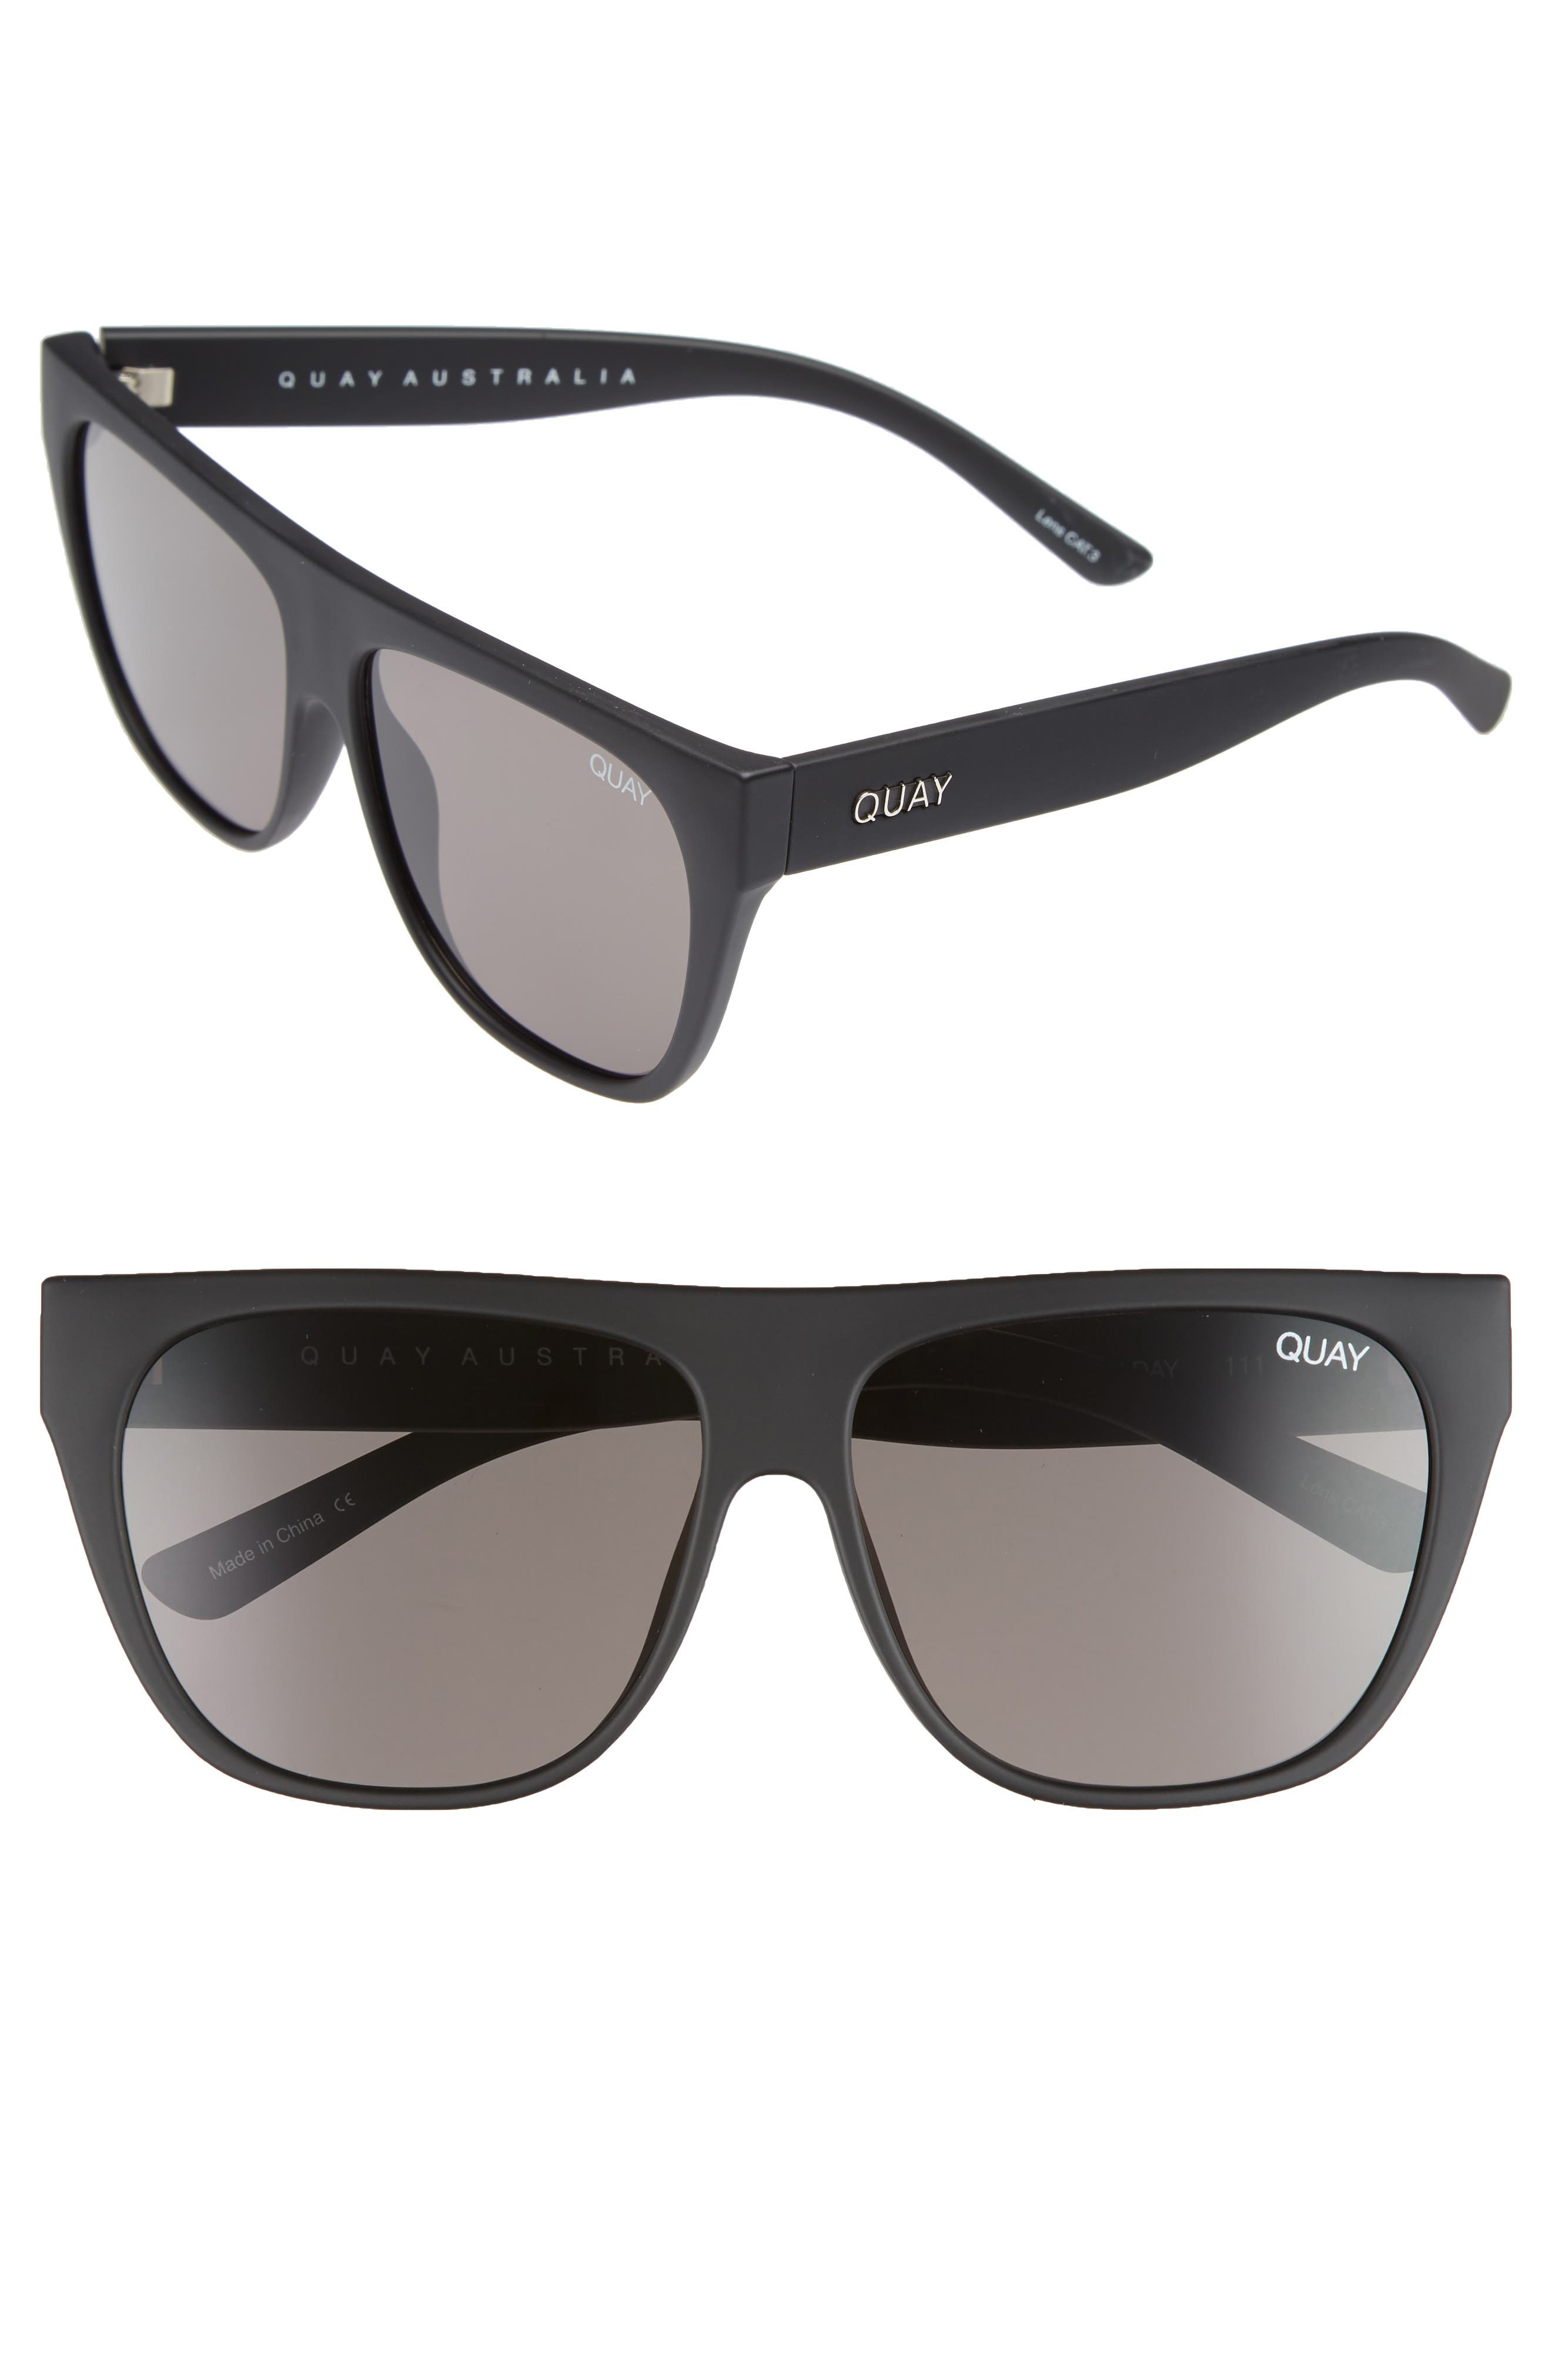 Drama by Day 55mm Square Sunglasses,                         Main,                         color, 005